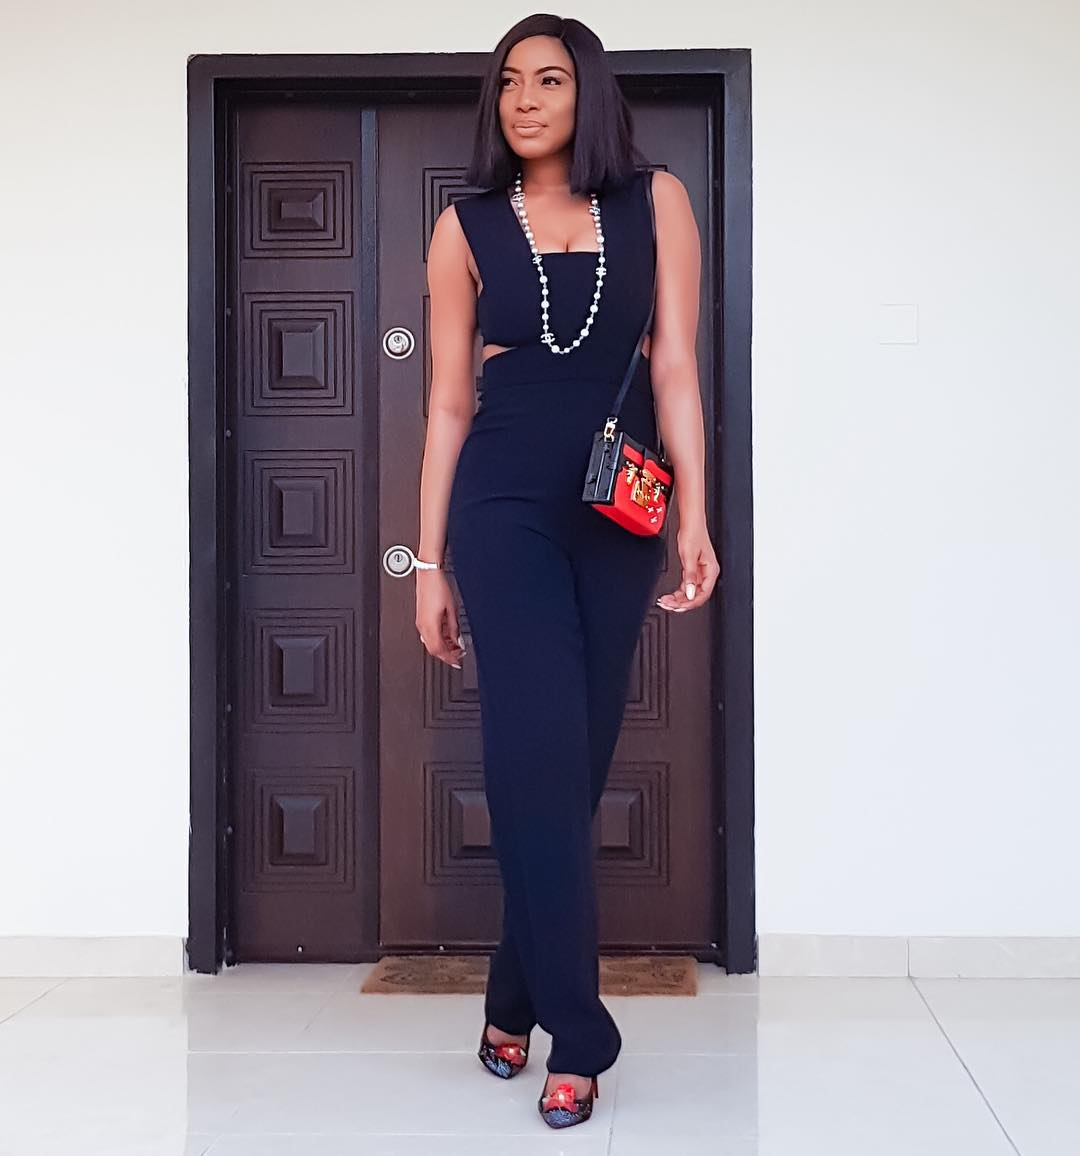 Chika Ike Reveals One Of Her Major Secrets To Success (2)